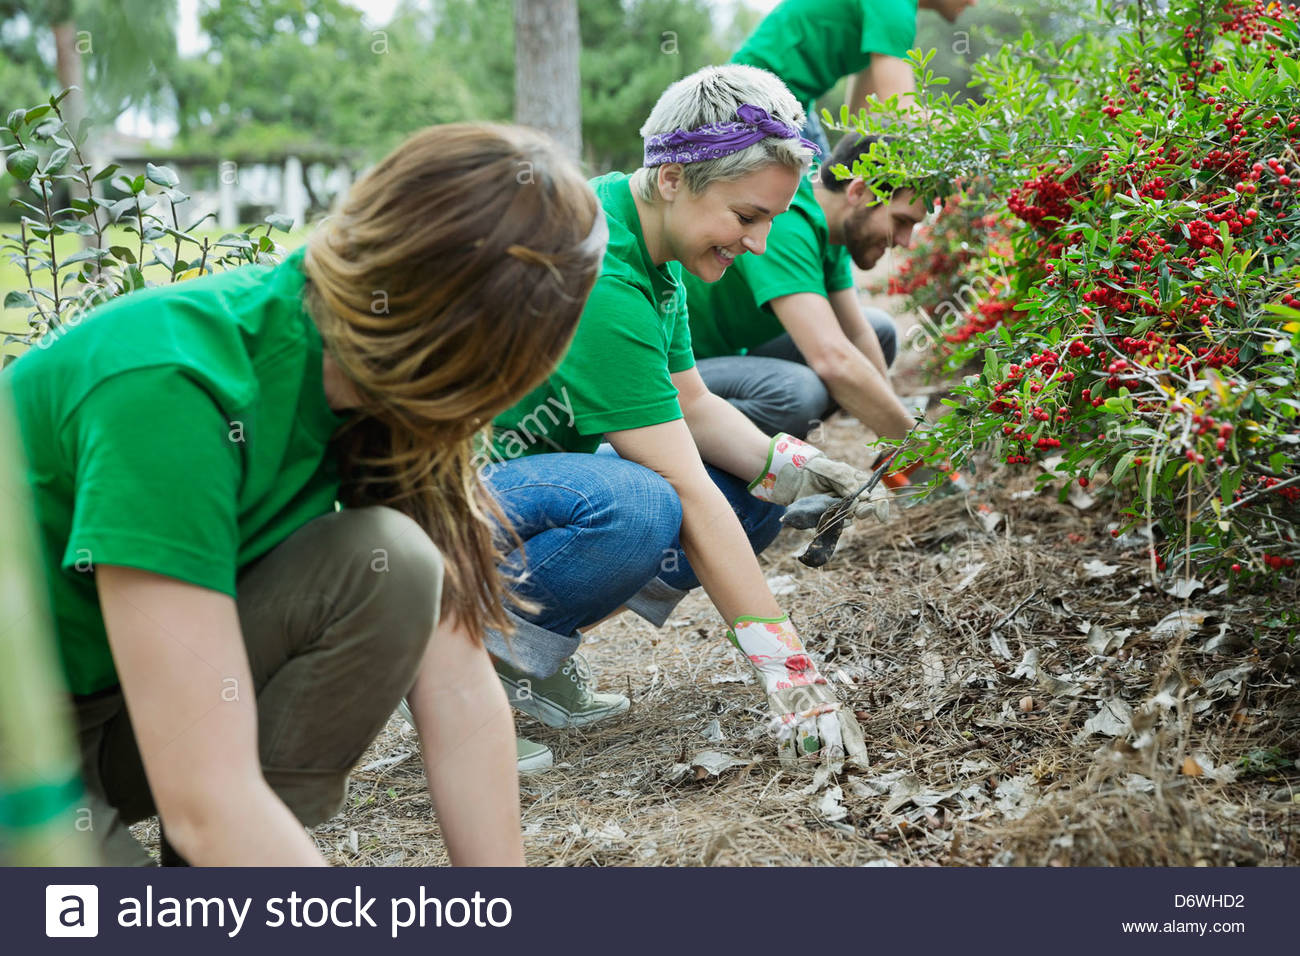 Group of environmentalists cleaning up park - Stock Image